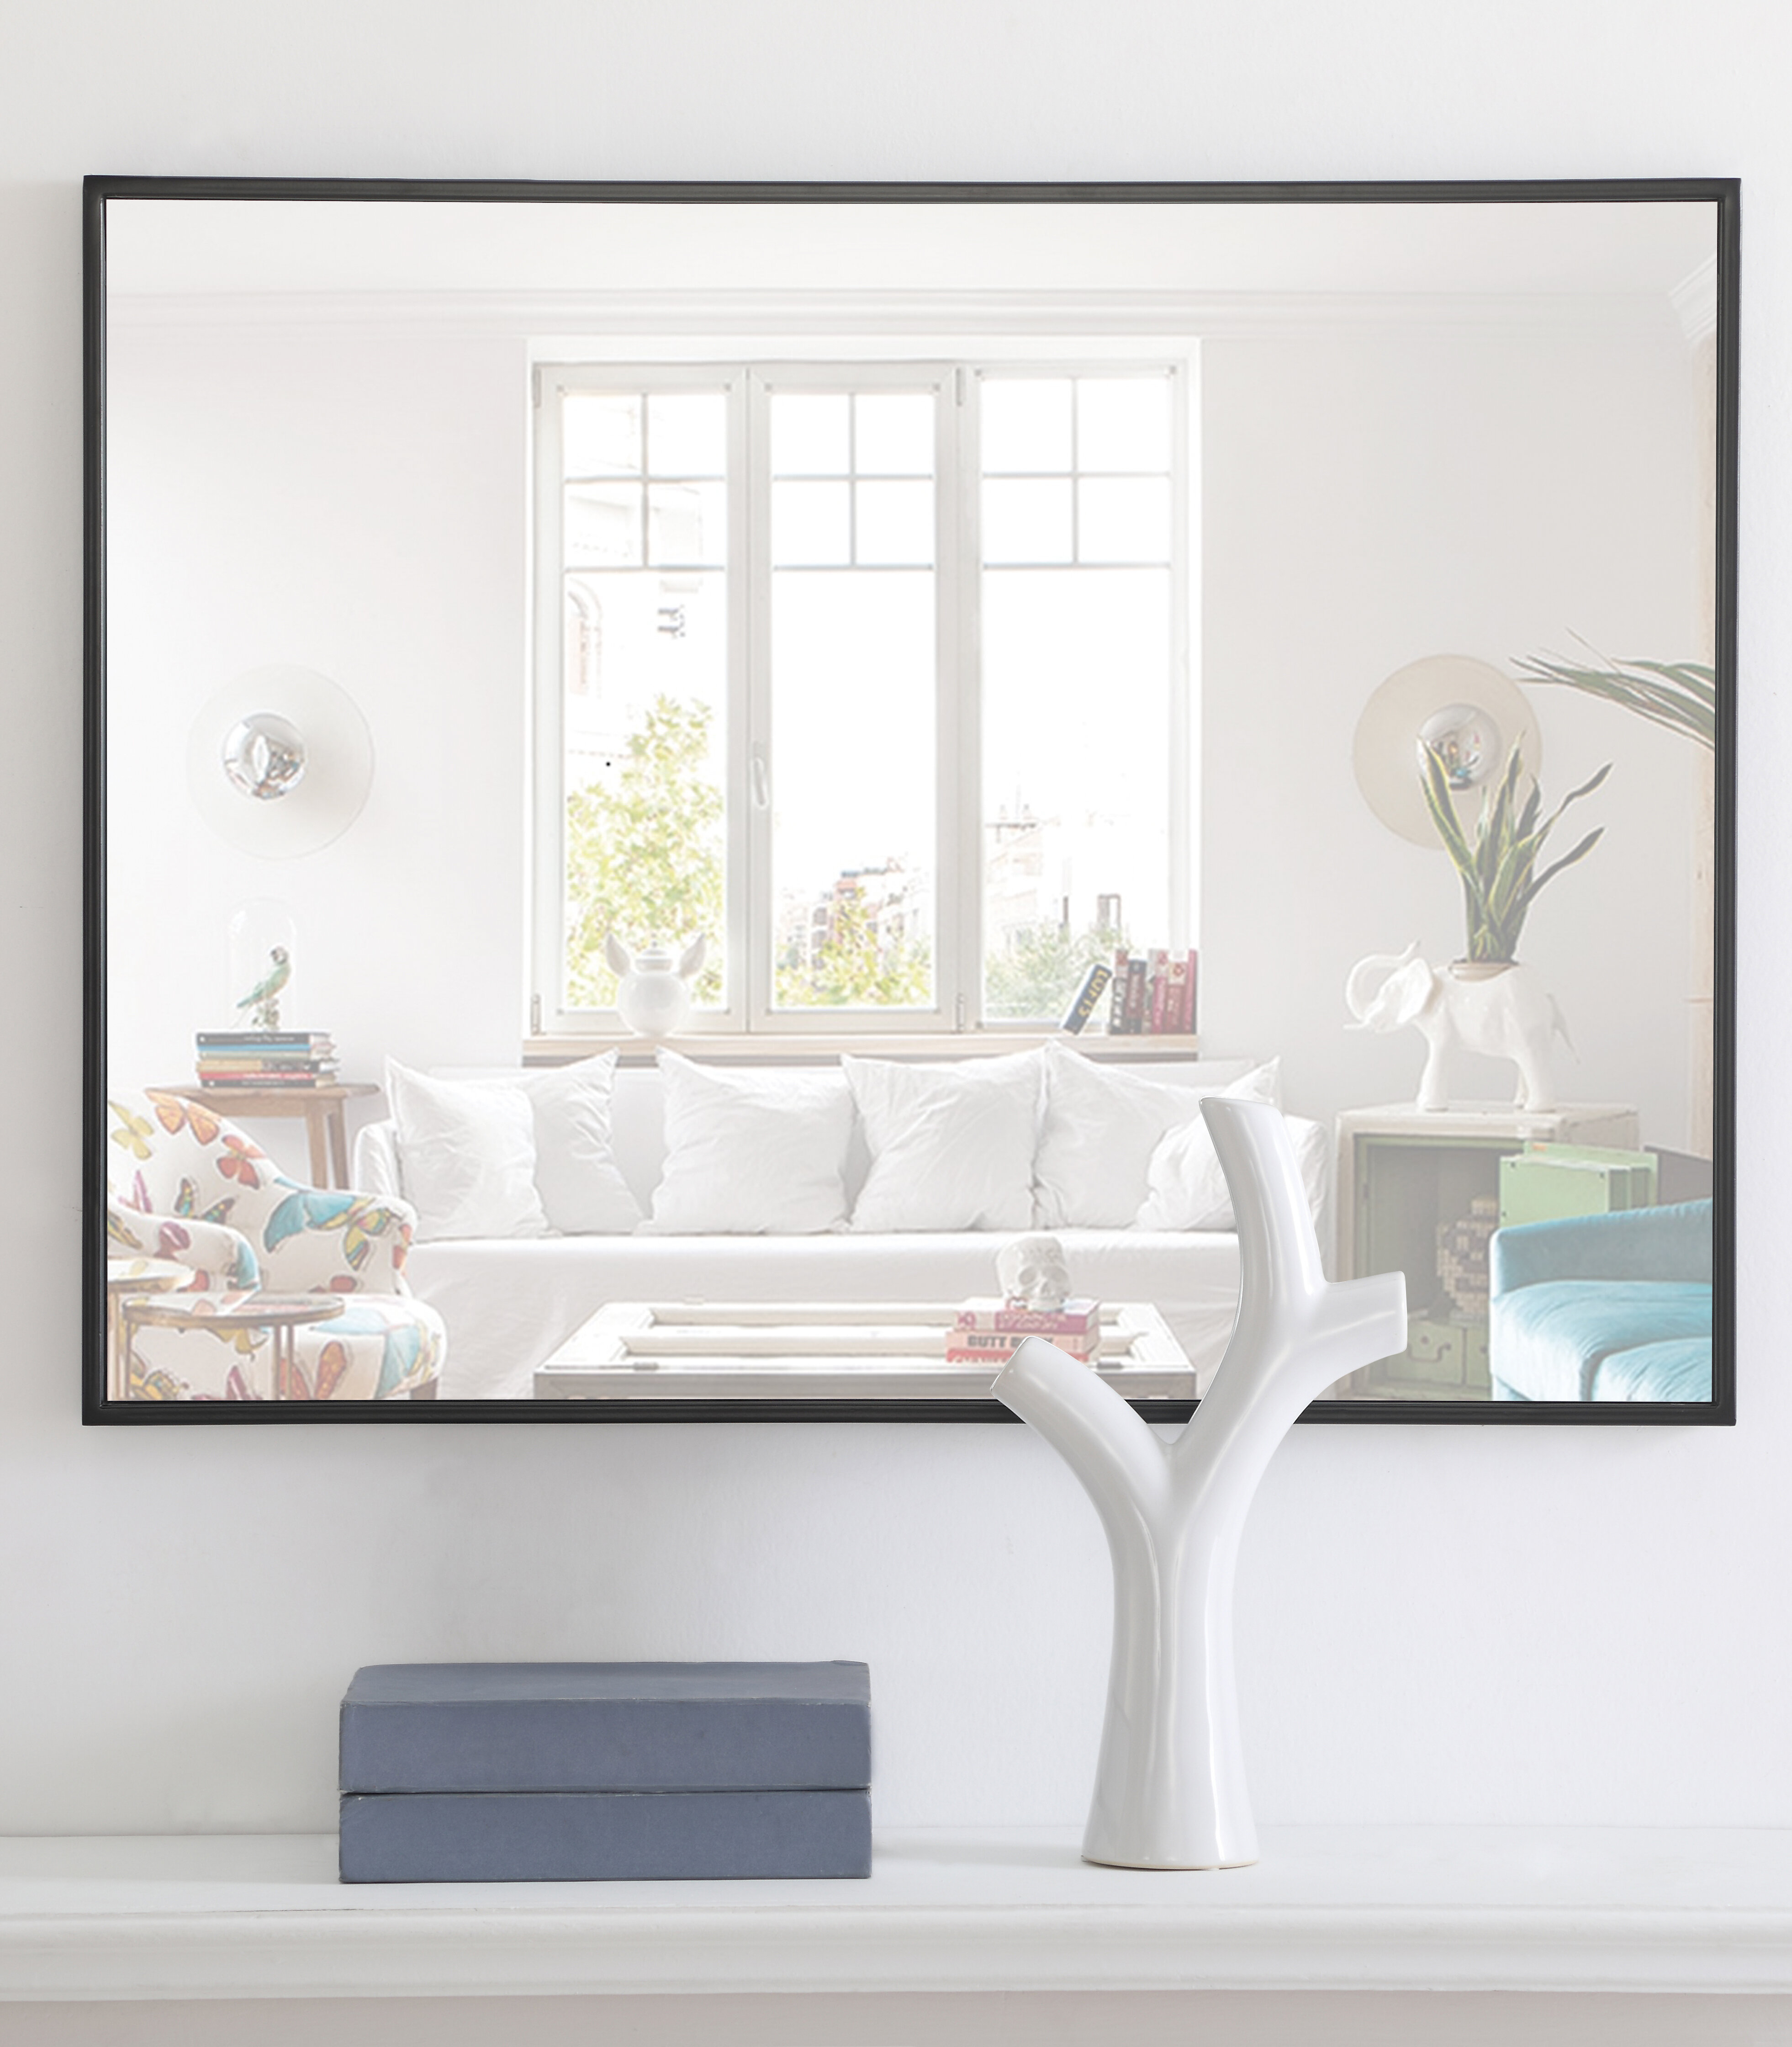 Three Posts Shildon Beveled Accent Mirror & Reviews | Wayfair In Kayden Accent Mirrors (View 14 of 20)